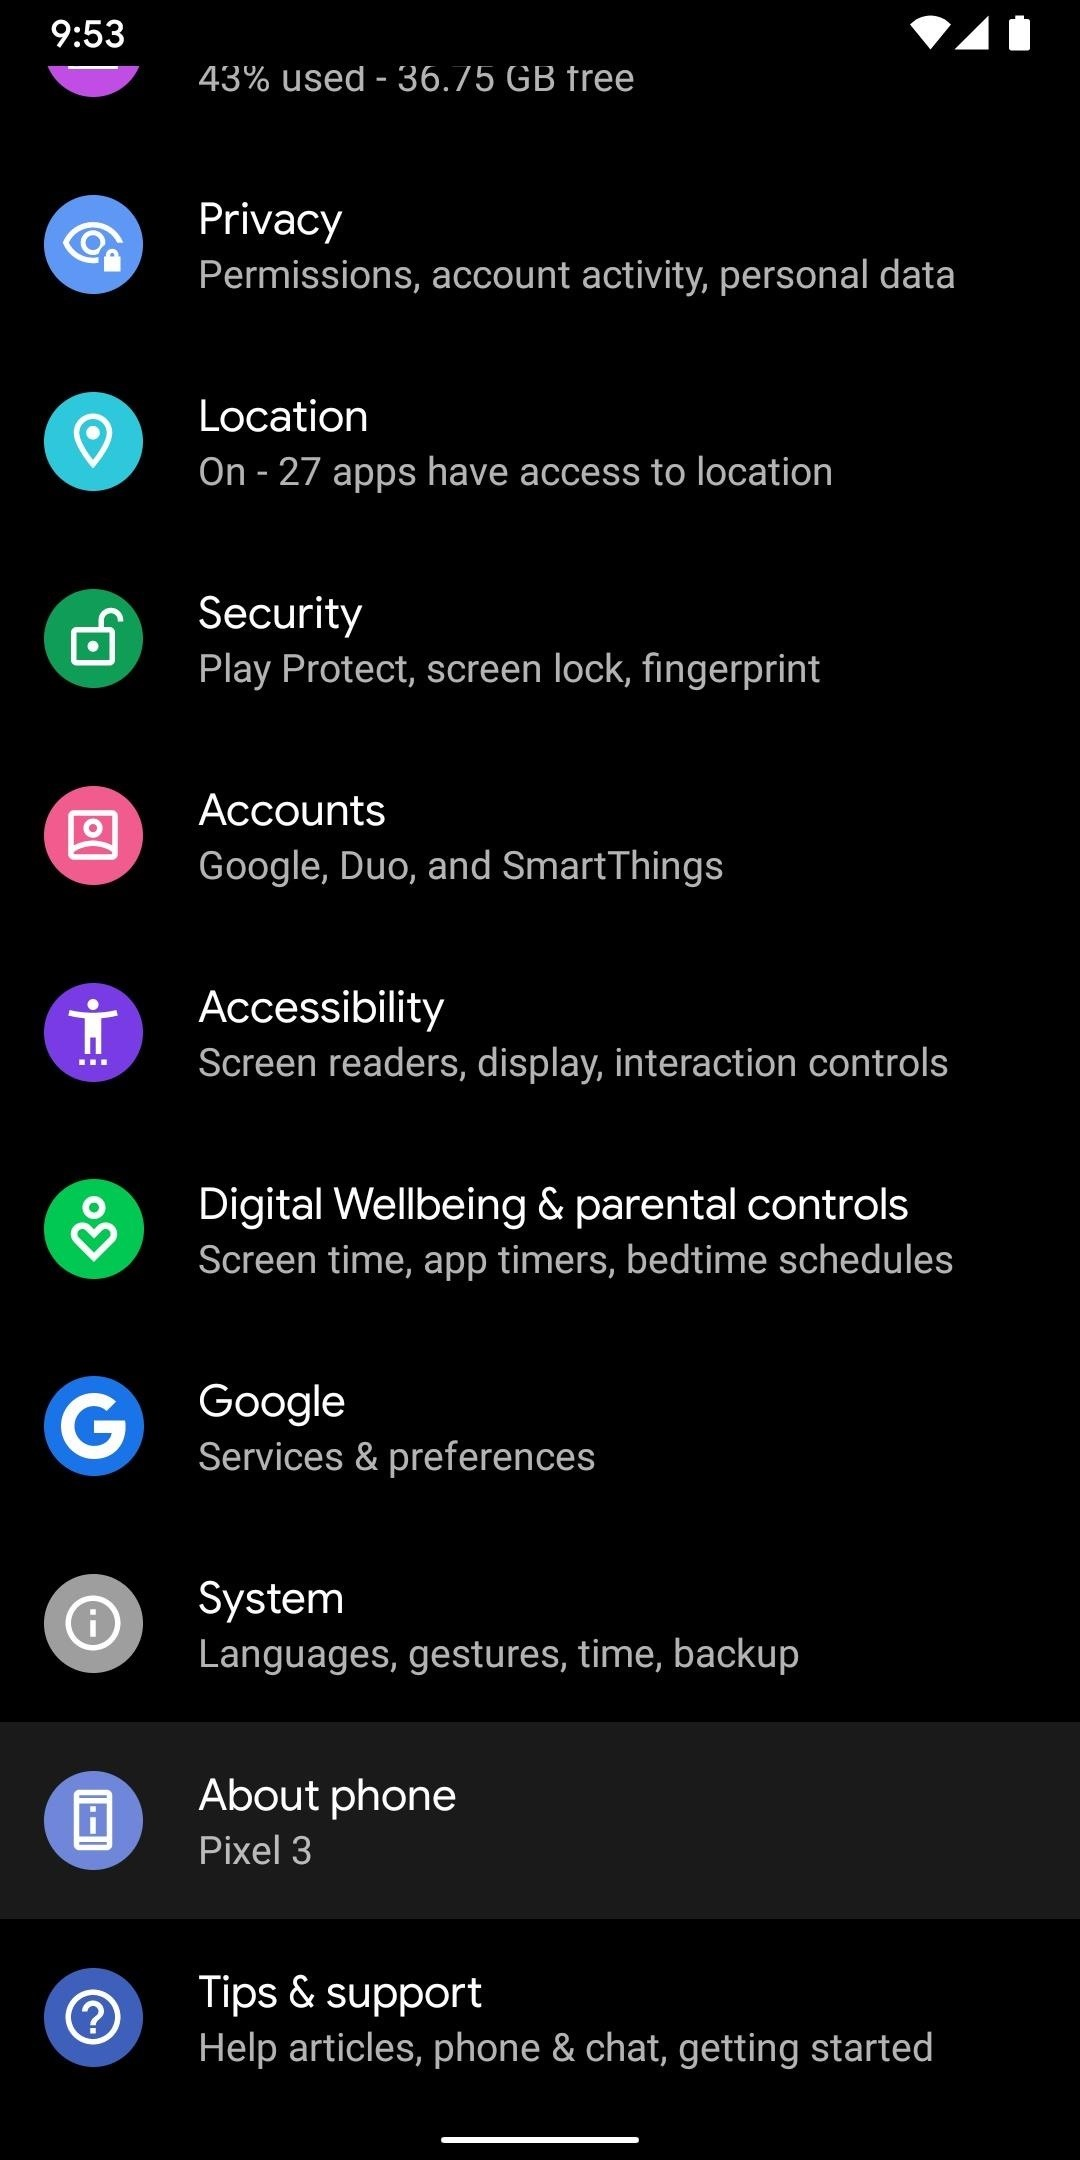 Get Custom Themes on Your Google Pixel with Android 10 — No Root Needed